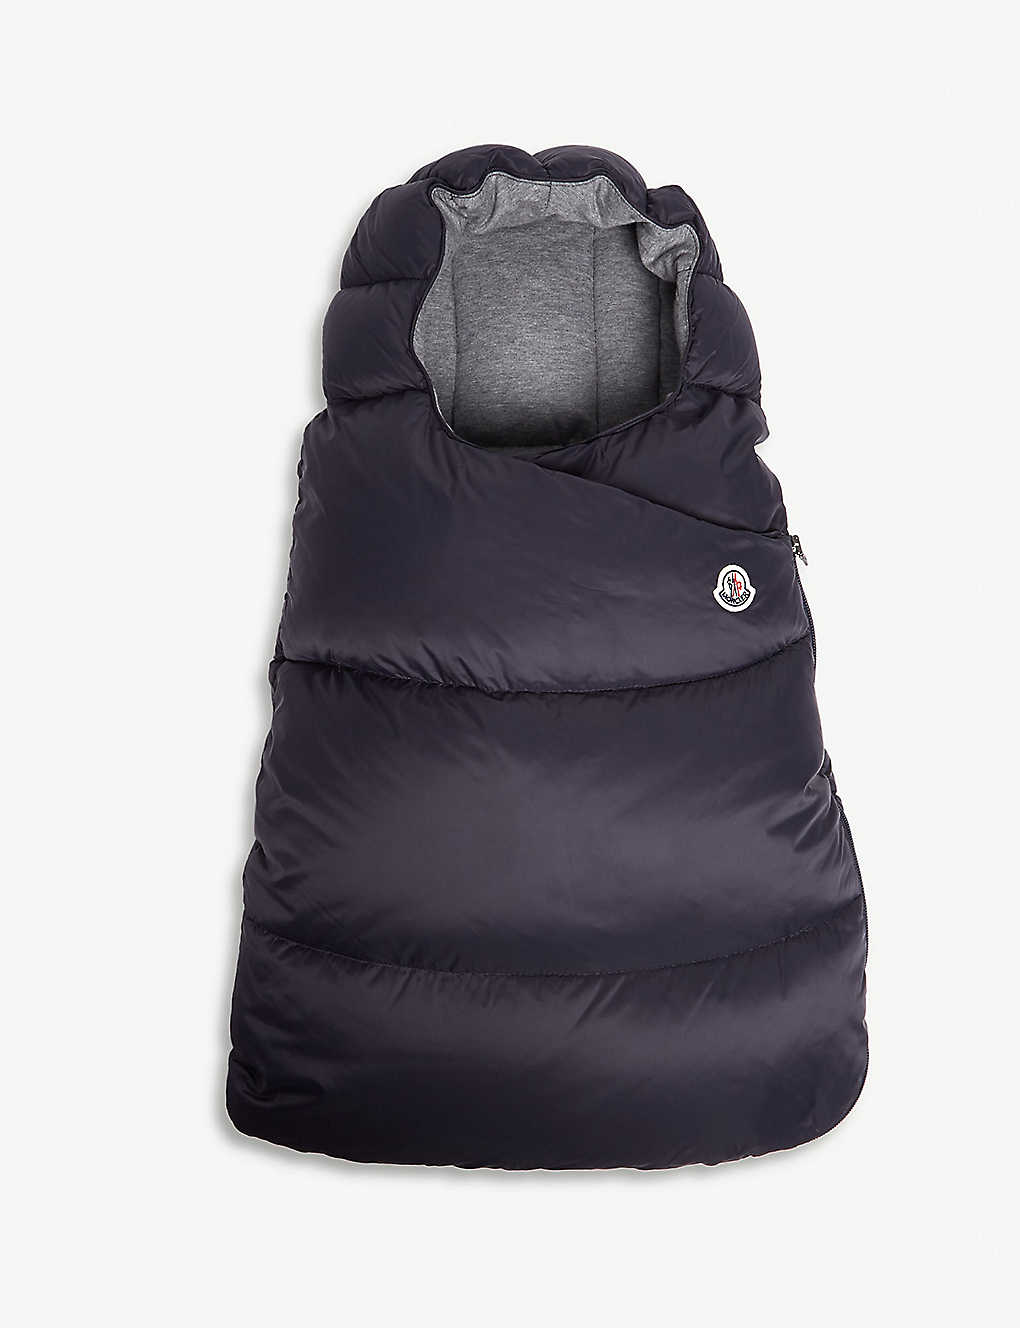 5f9605109539 MONCLER - Insulated nylon baby carrier 3-6 months